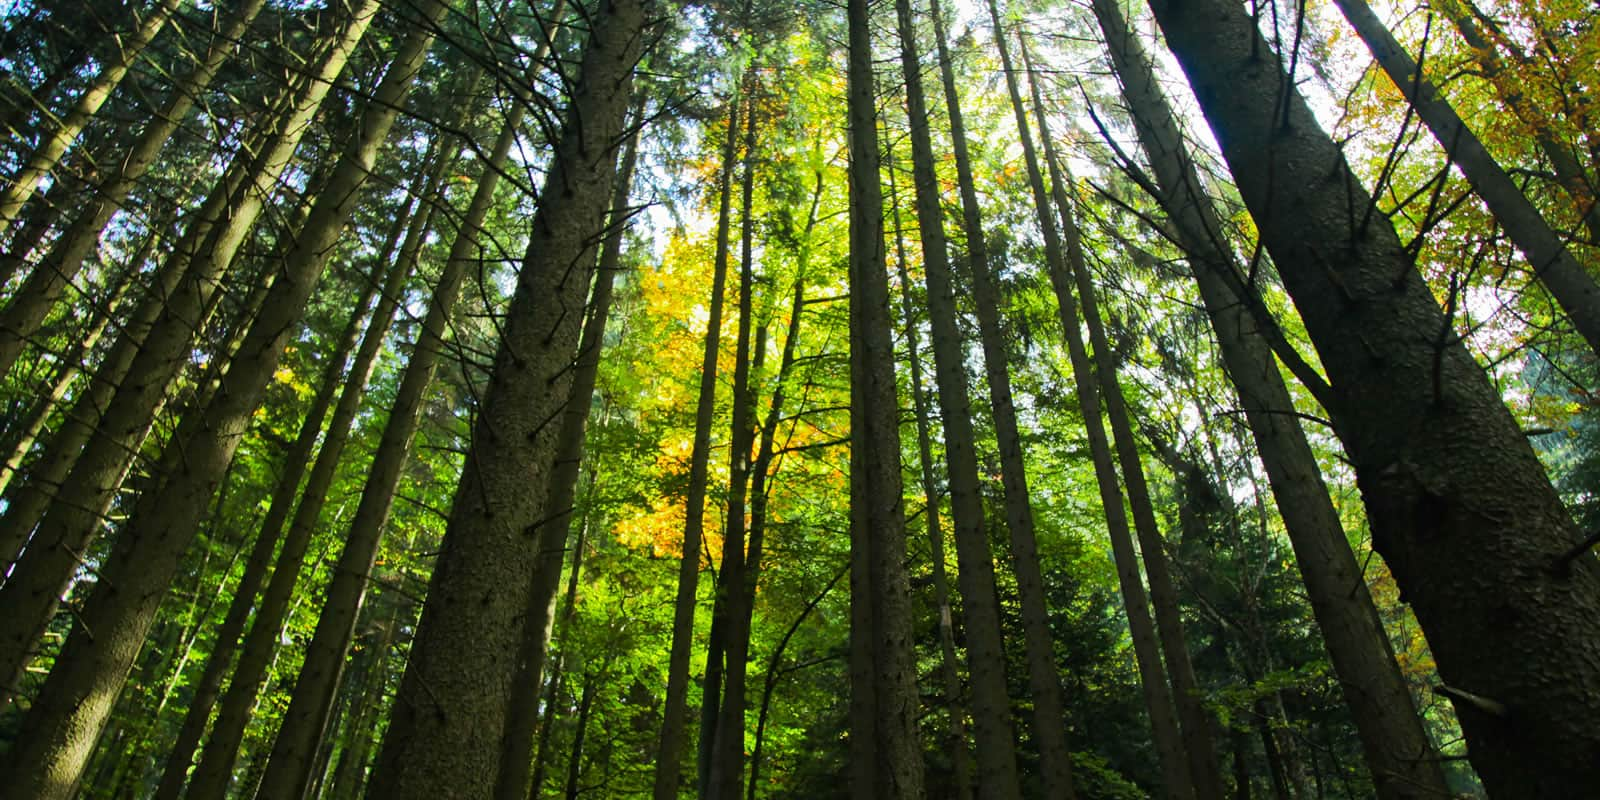 smart-timber-harvesting-on-a-property-requires-planning